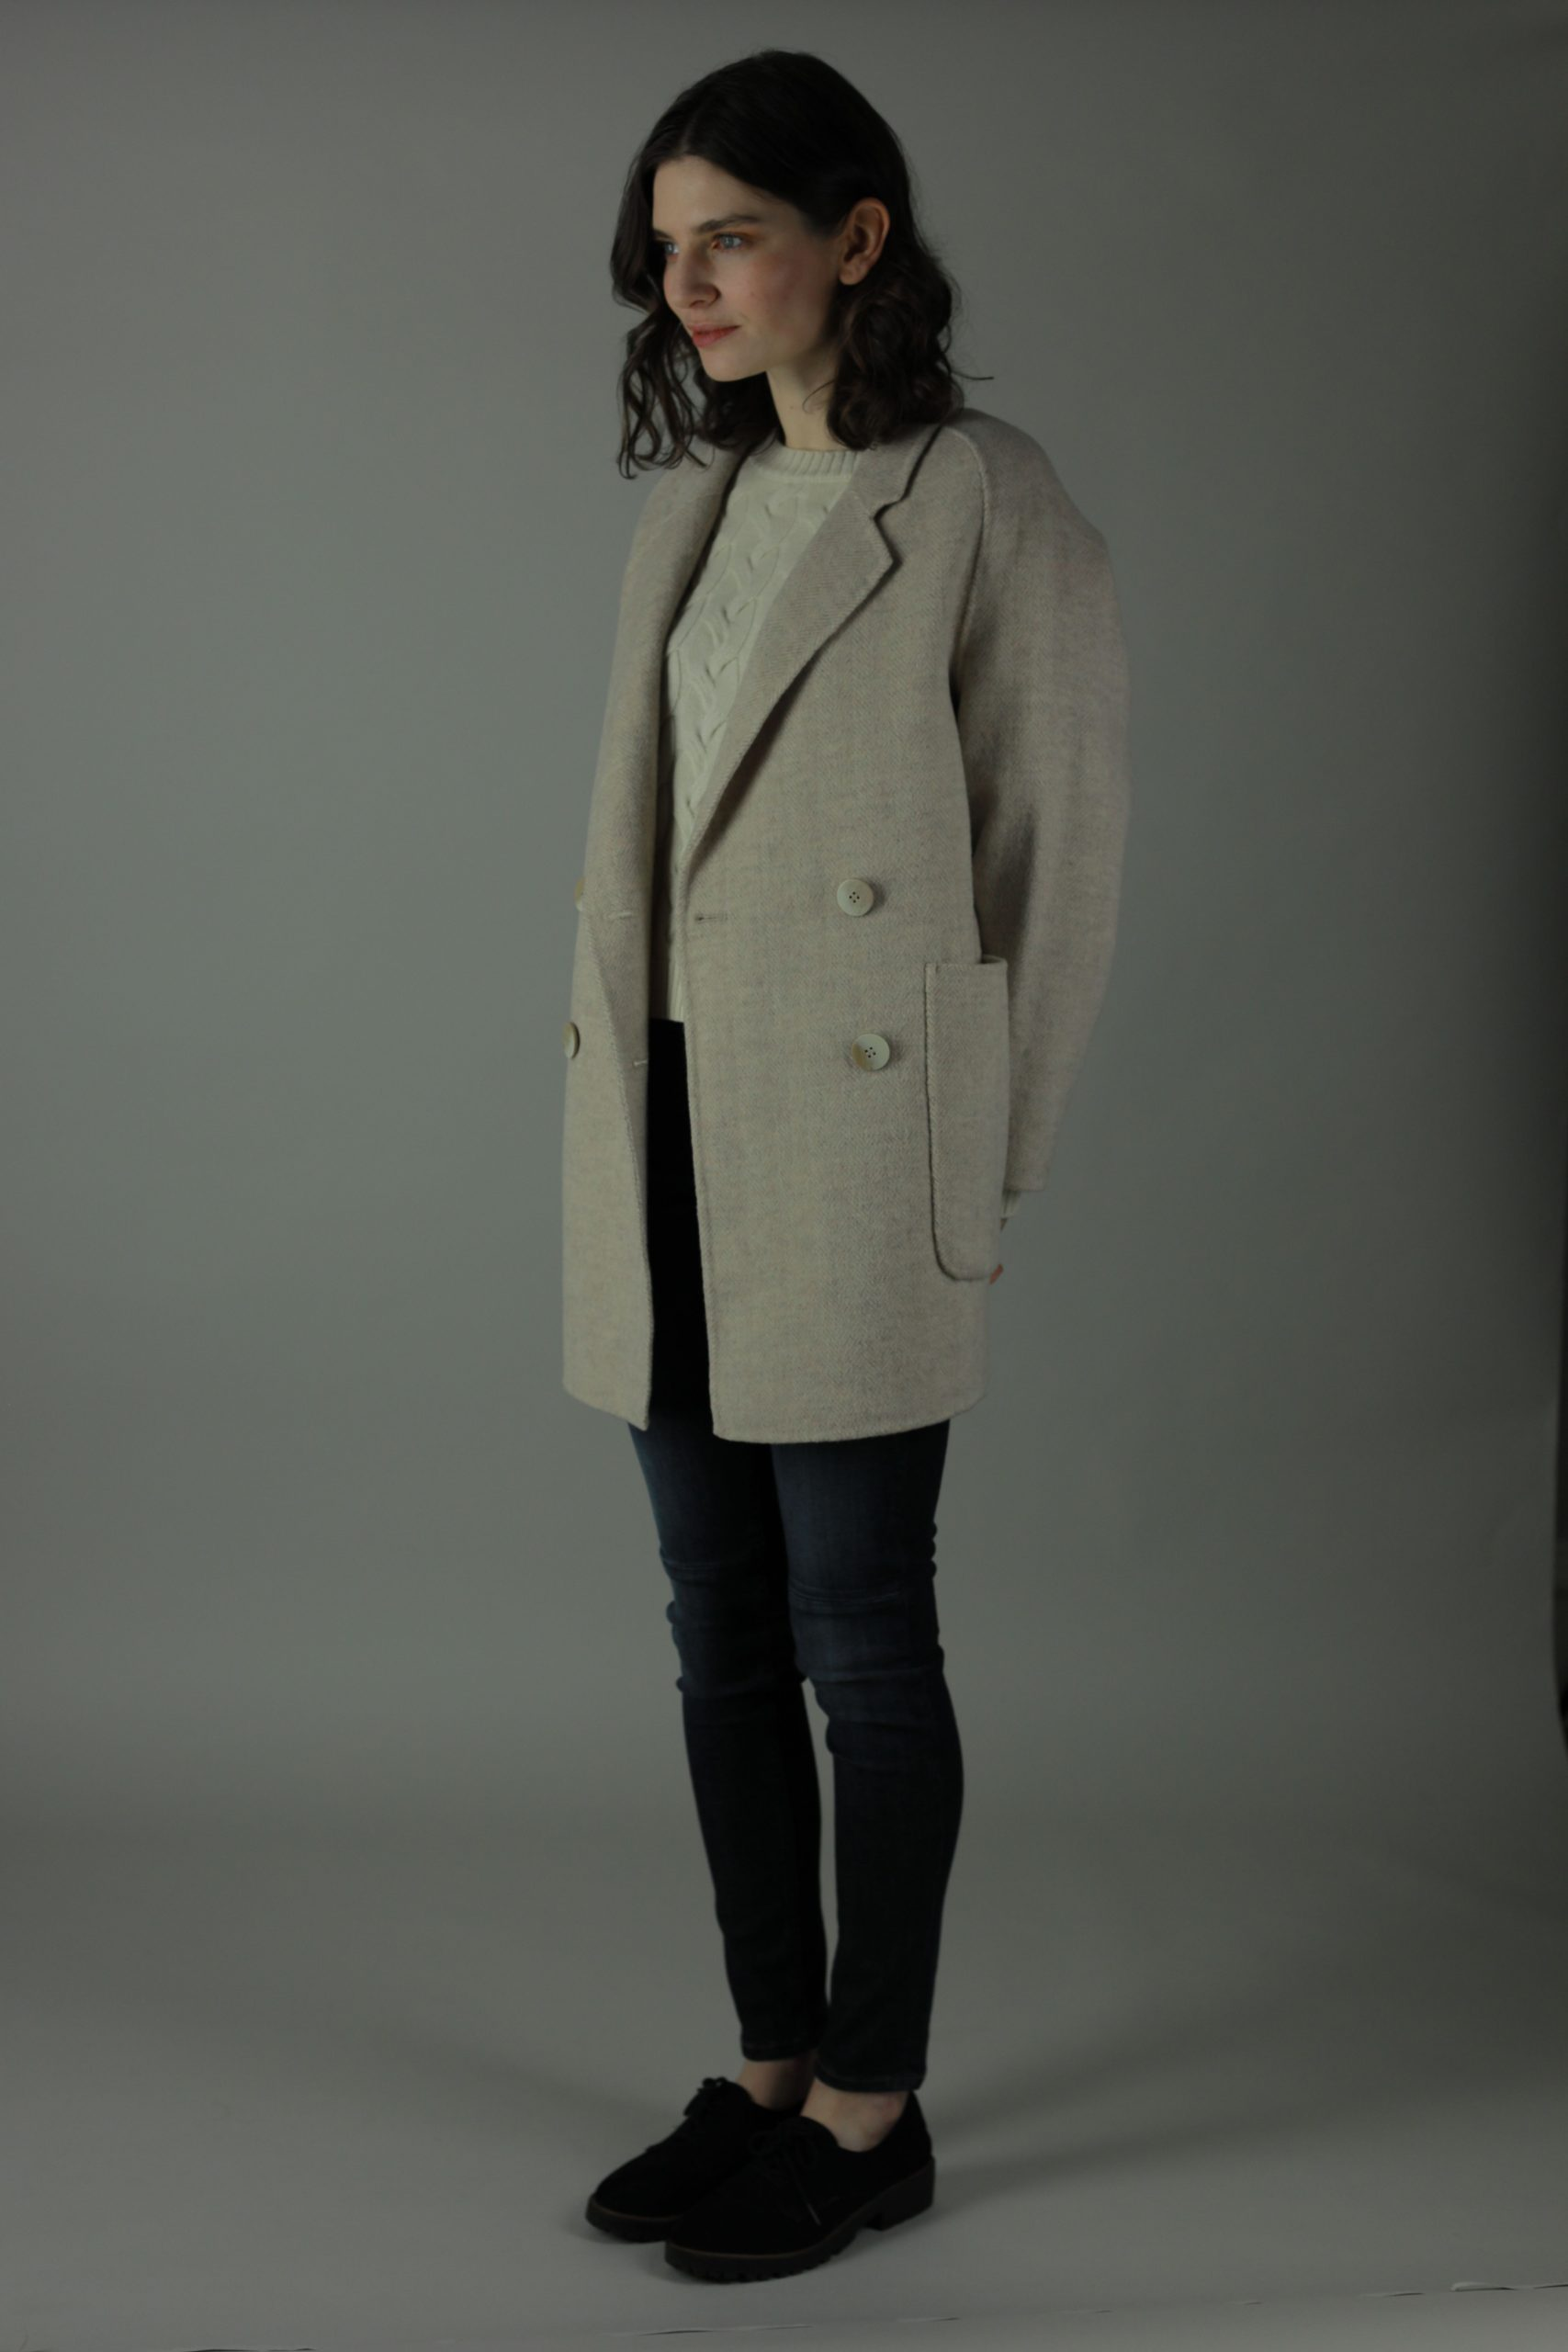 Casually luxurious is our oversized Ellen double-face Cashmere Coat. Thigh length for casual wear, this coat features 100% Cashmere, loose fitting style and beautiful marble effect buttons. Side View.